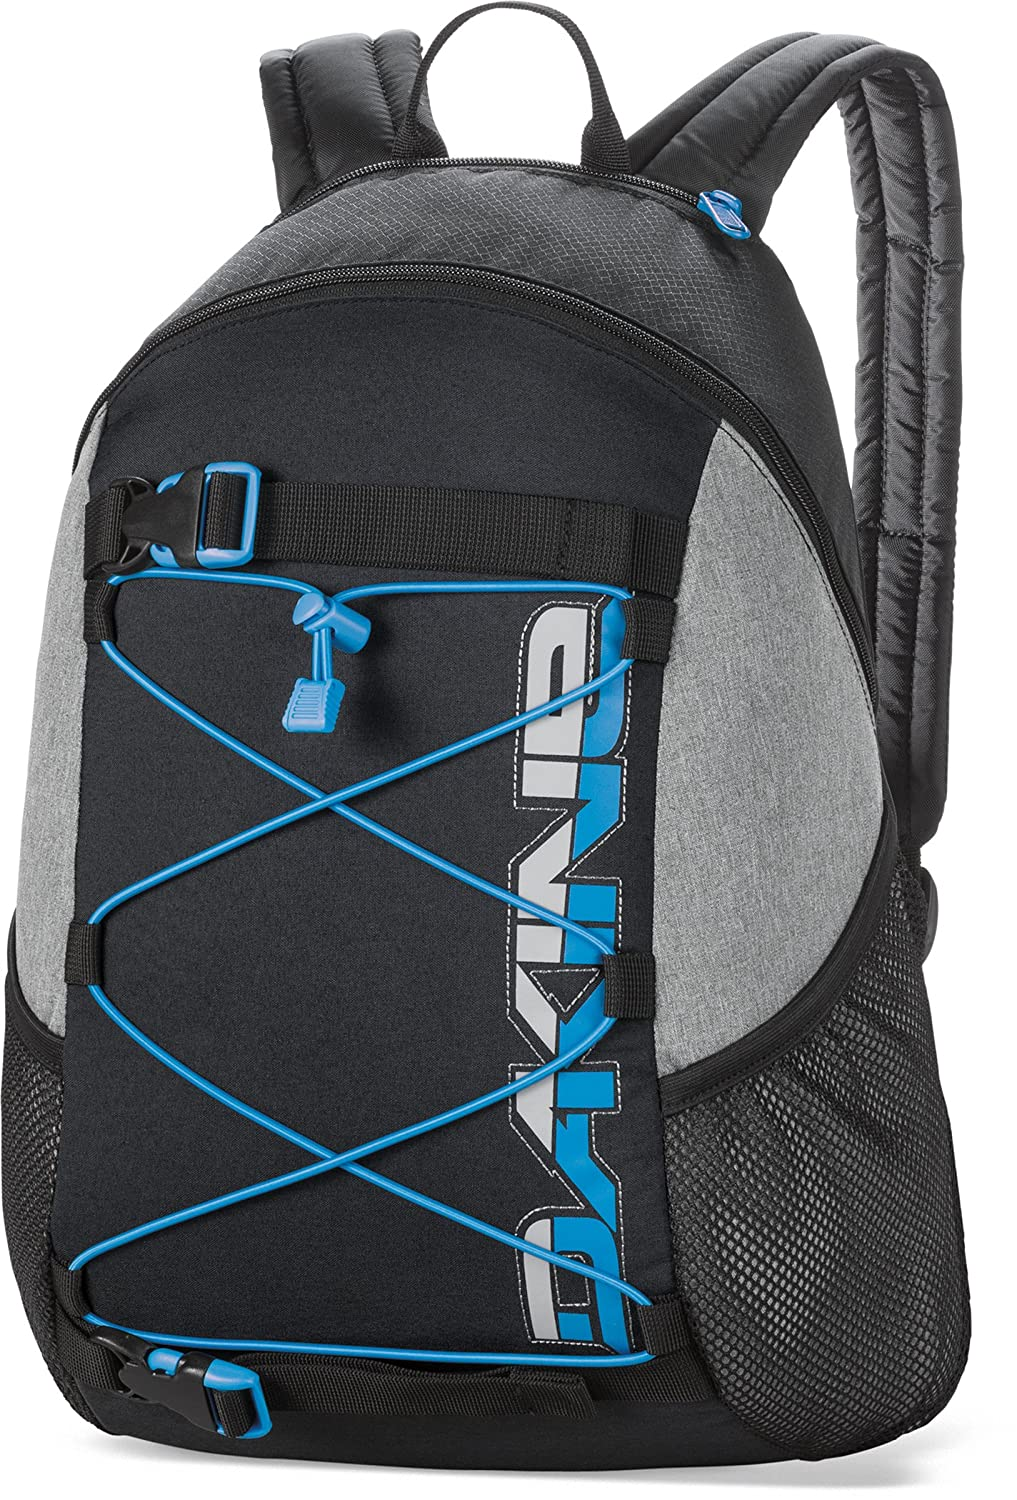 69b7e33a3b3 Dakine Wonder Women's Outdoor Hiking Backpack available in Geo - Small:  Amazon.co.uk: Sports & Outdoors